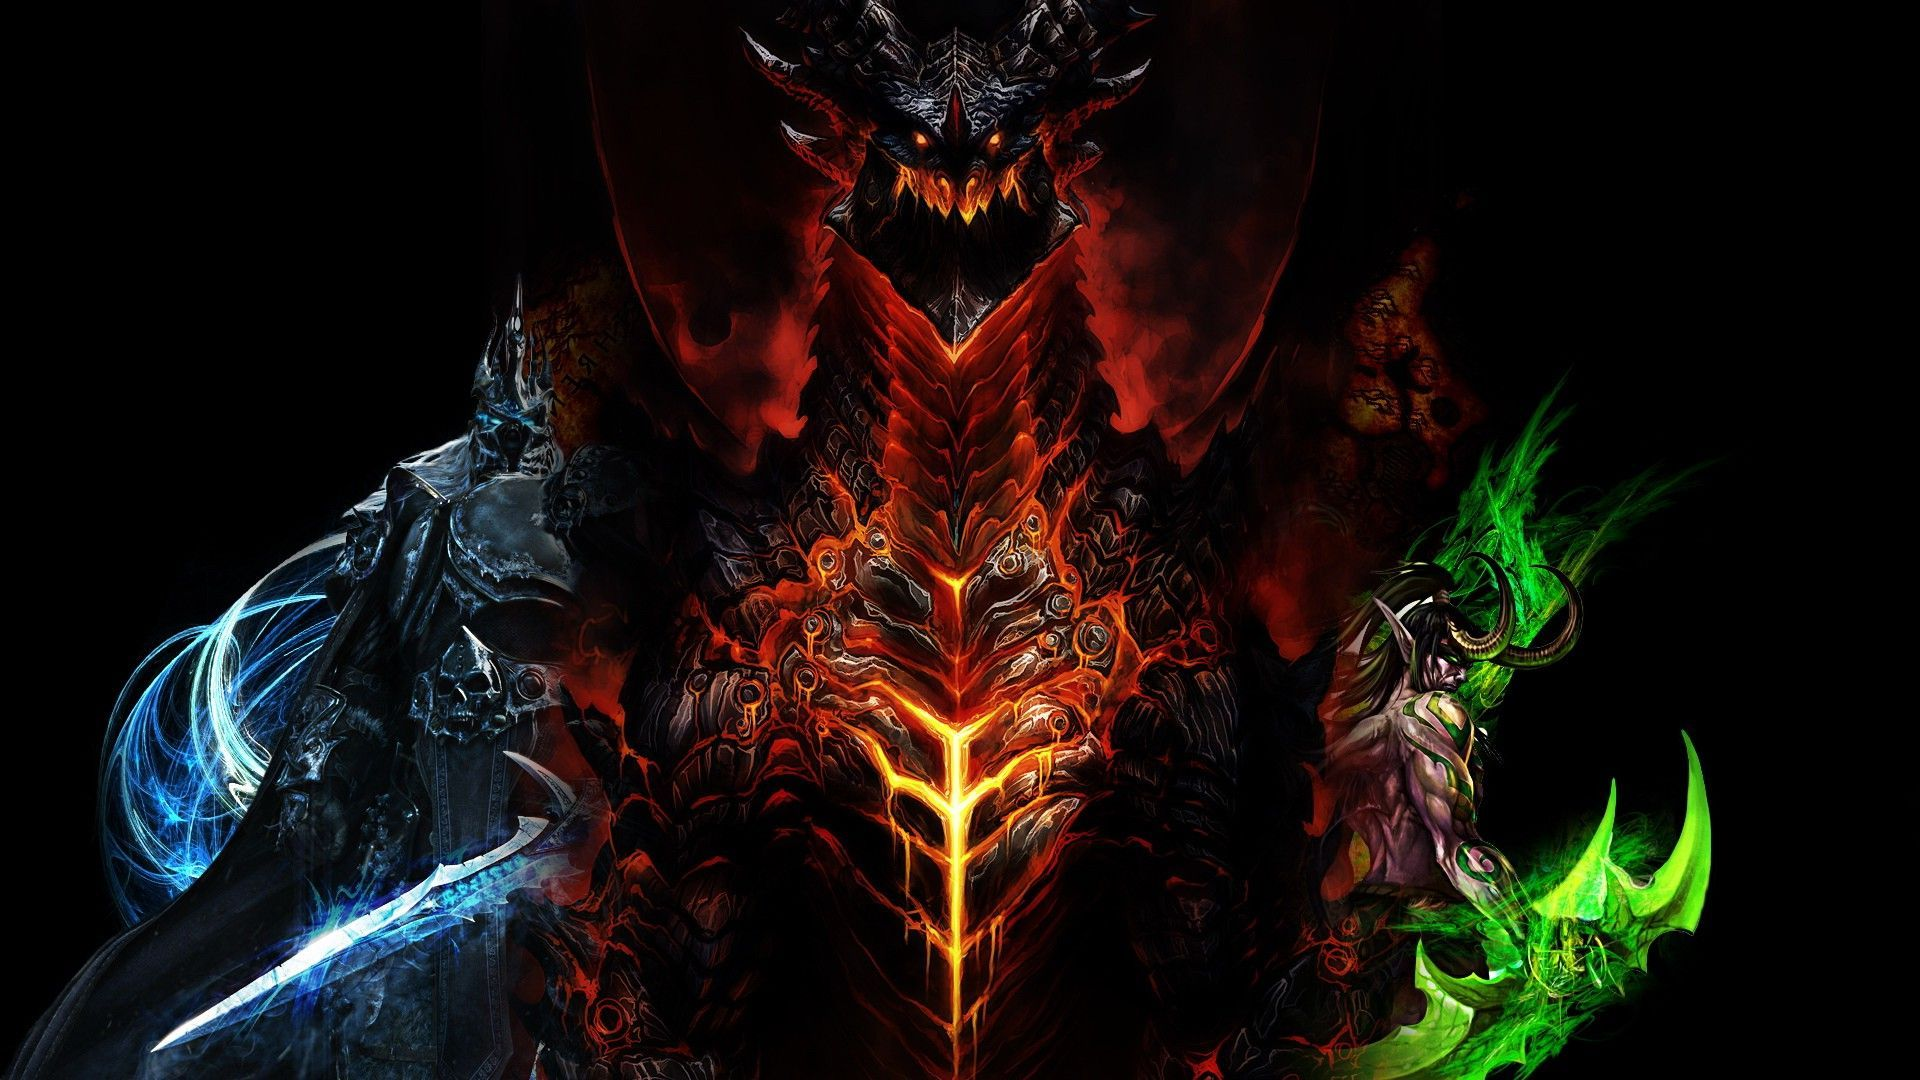 Warcraft wallpapers pictures images - World of warcraft images ...